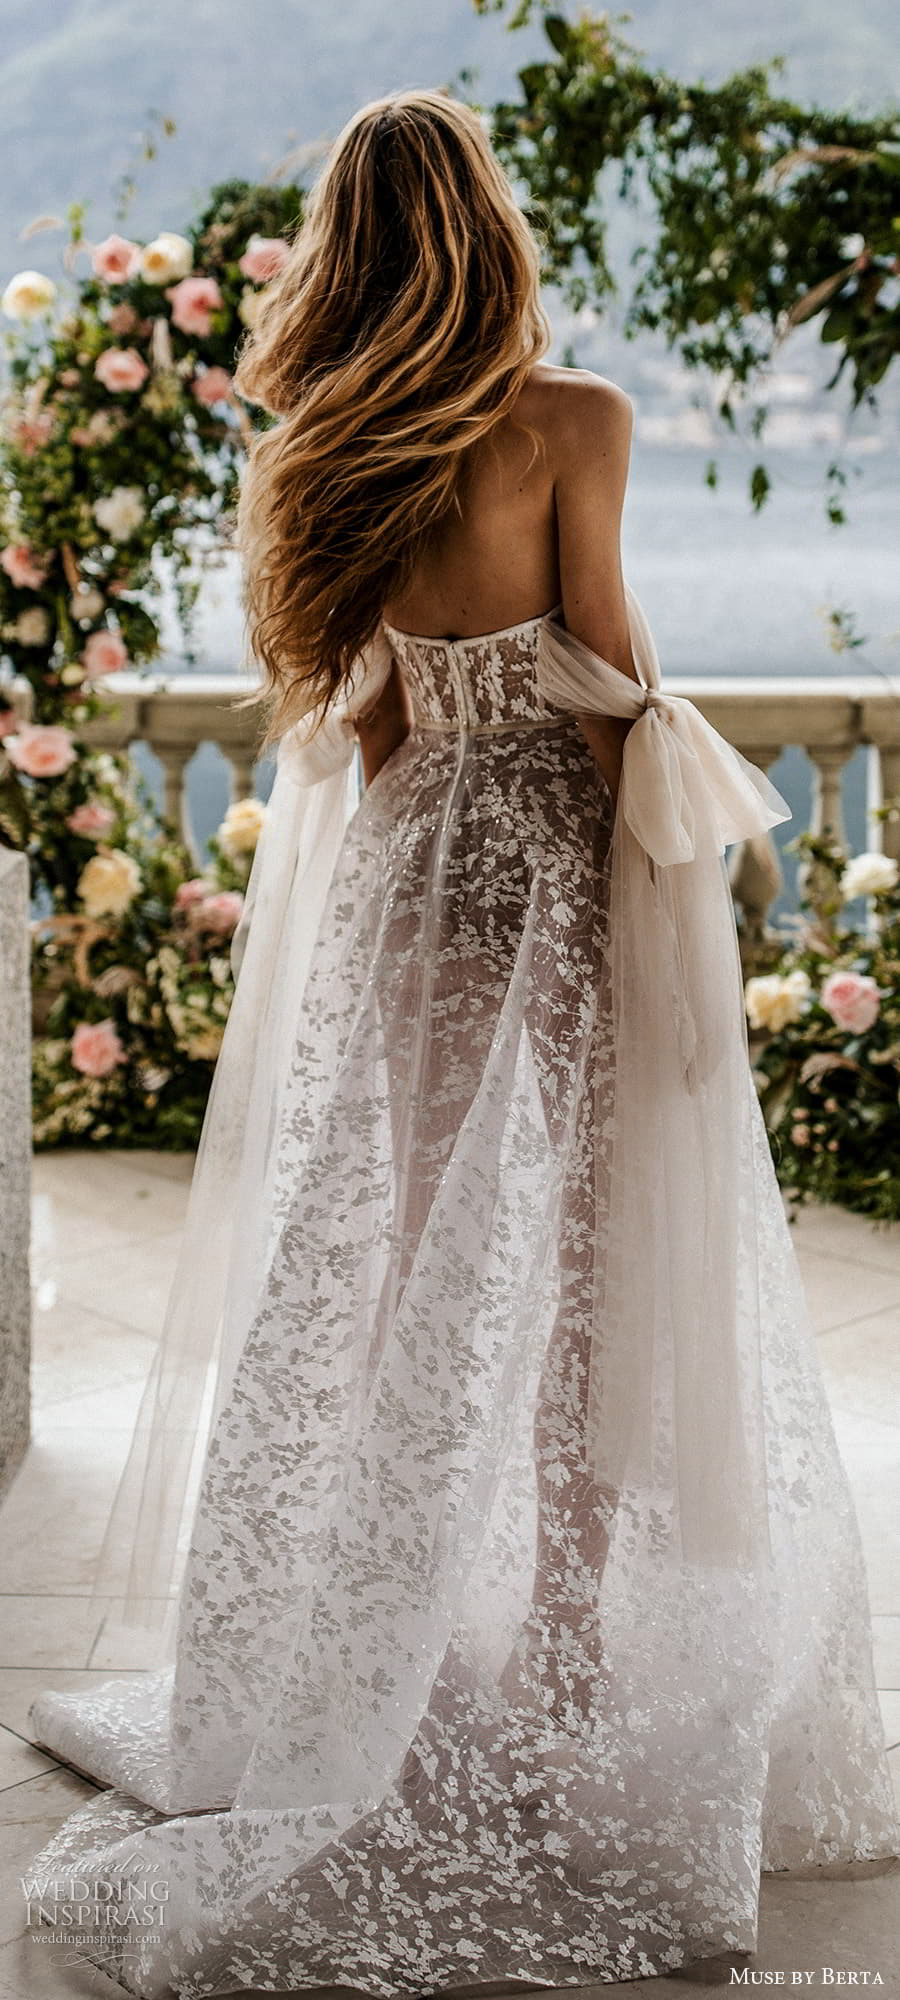 muse by berta spring 2022 bridal off shoulder straps sweetheart neckline fully embellished lace a line ball gown wedding dress chapel train ( 16) lbv